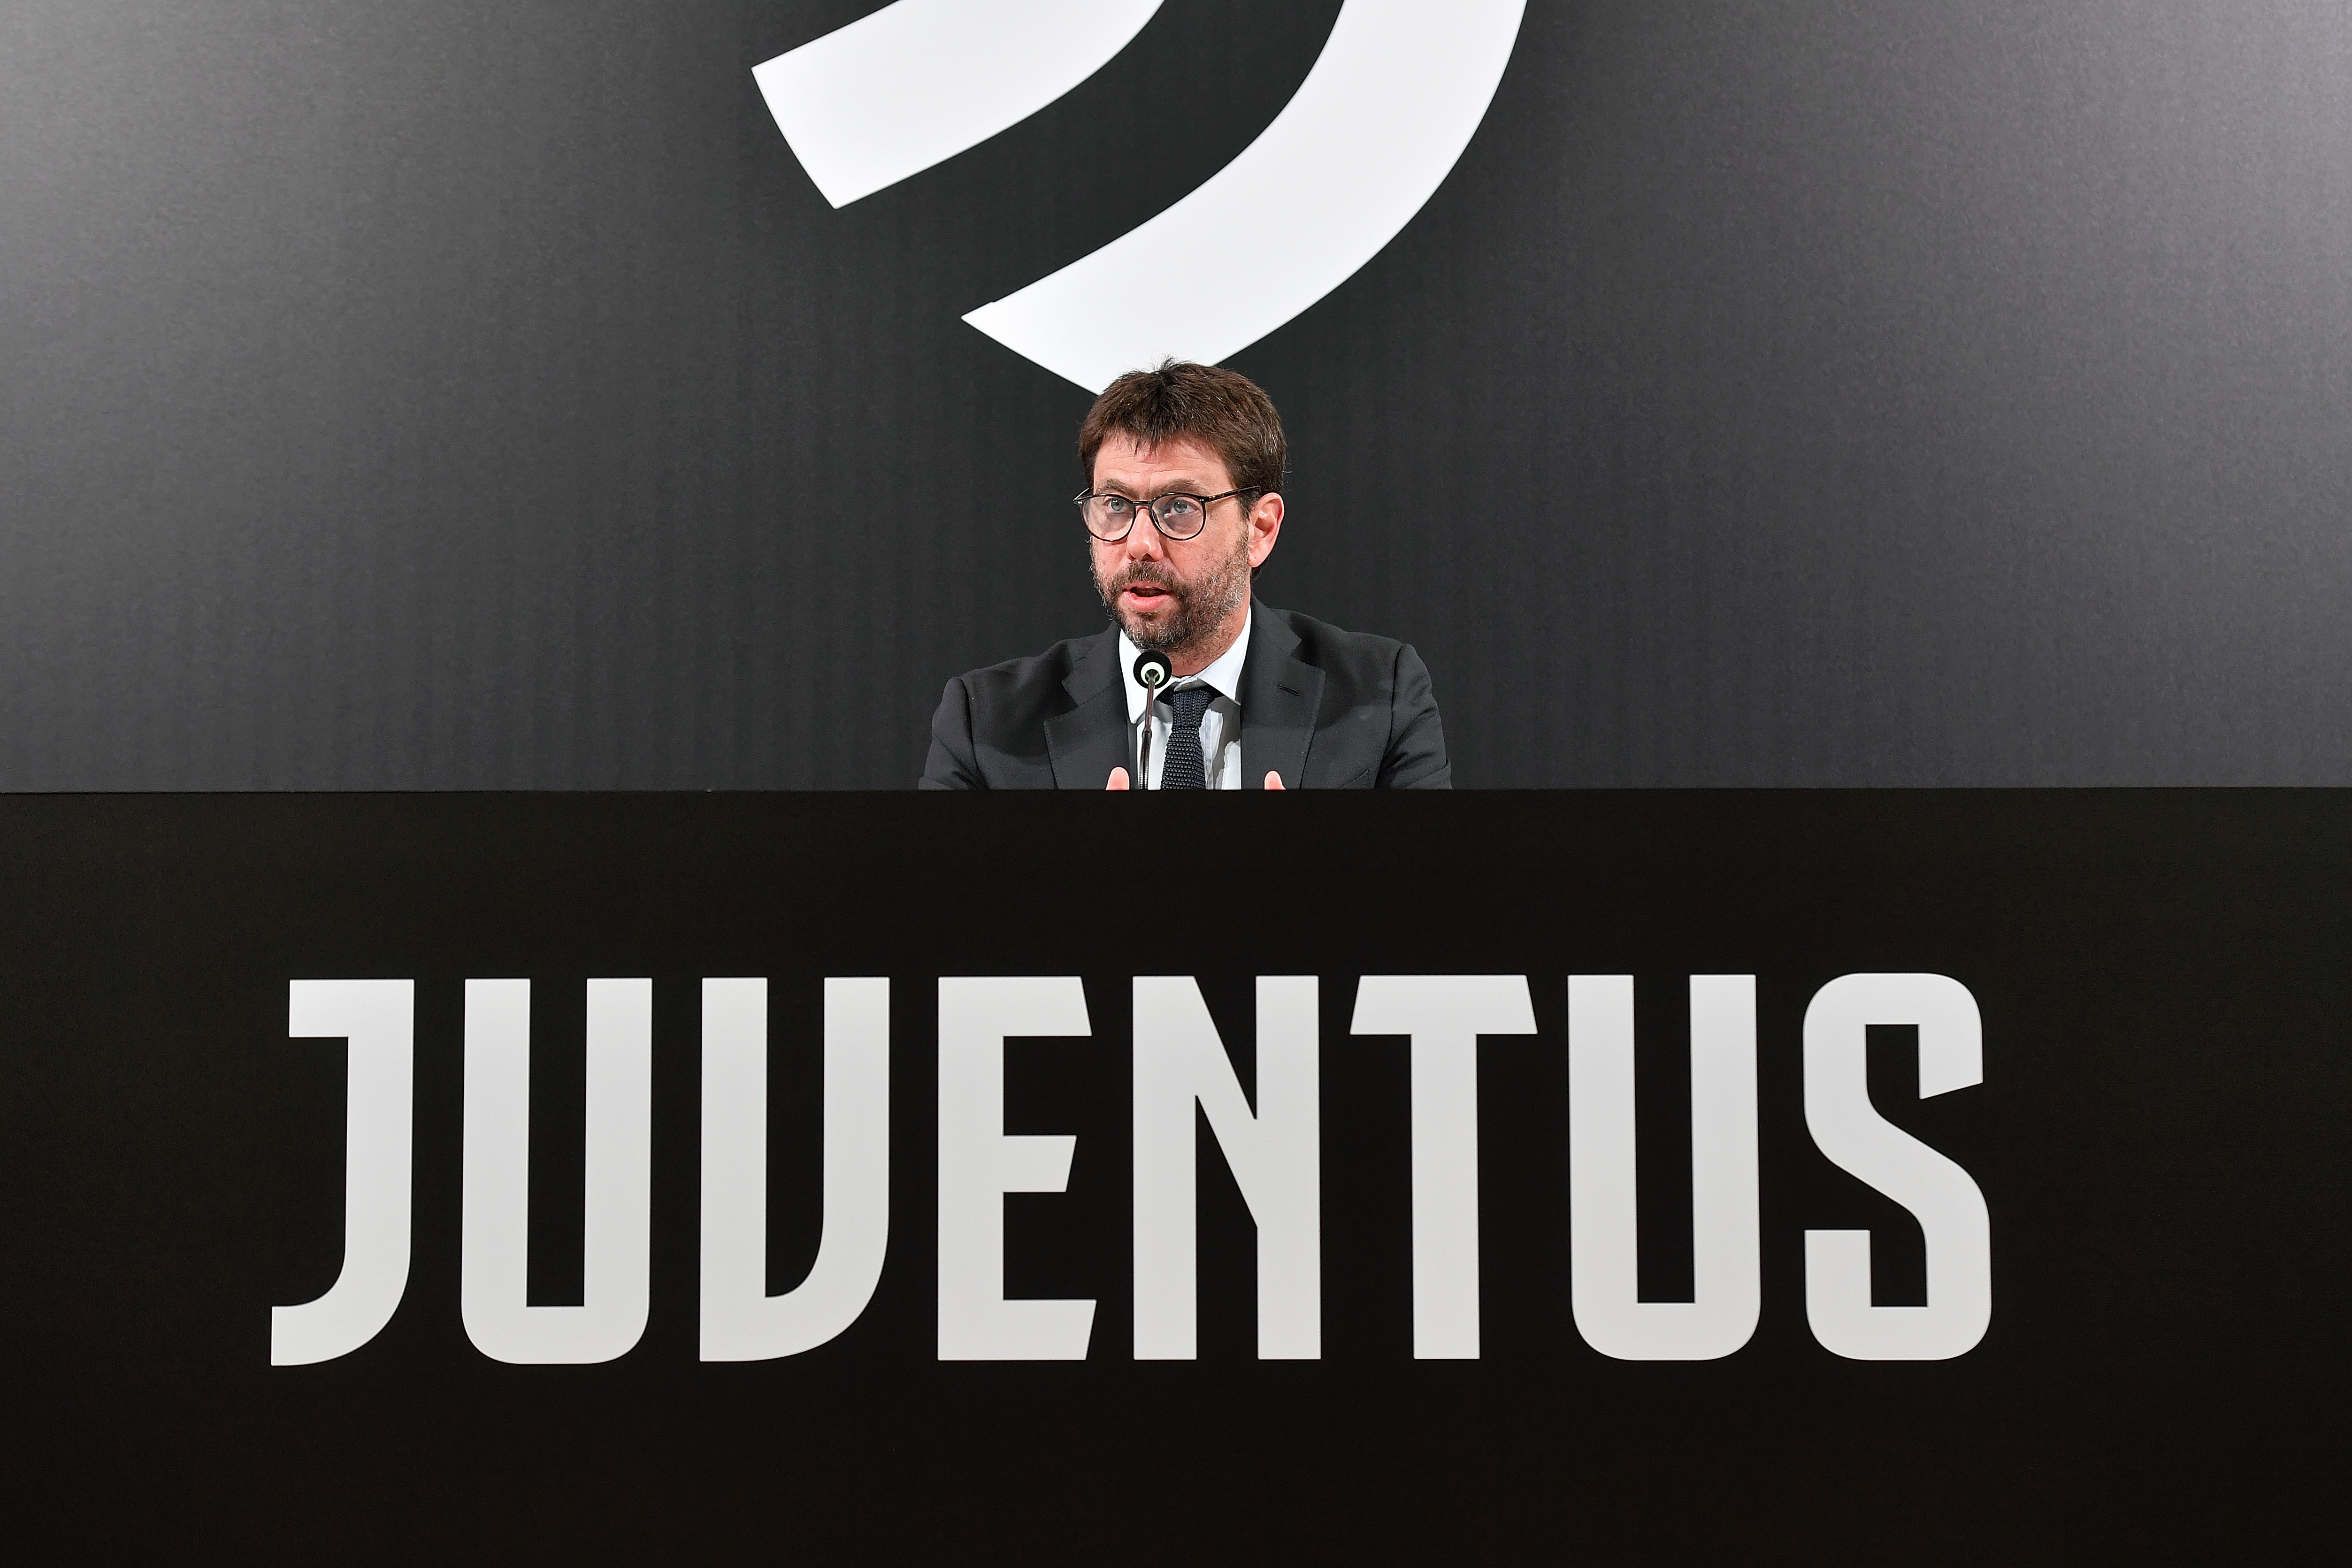 Juventus Shareholders Meeting Press Conference